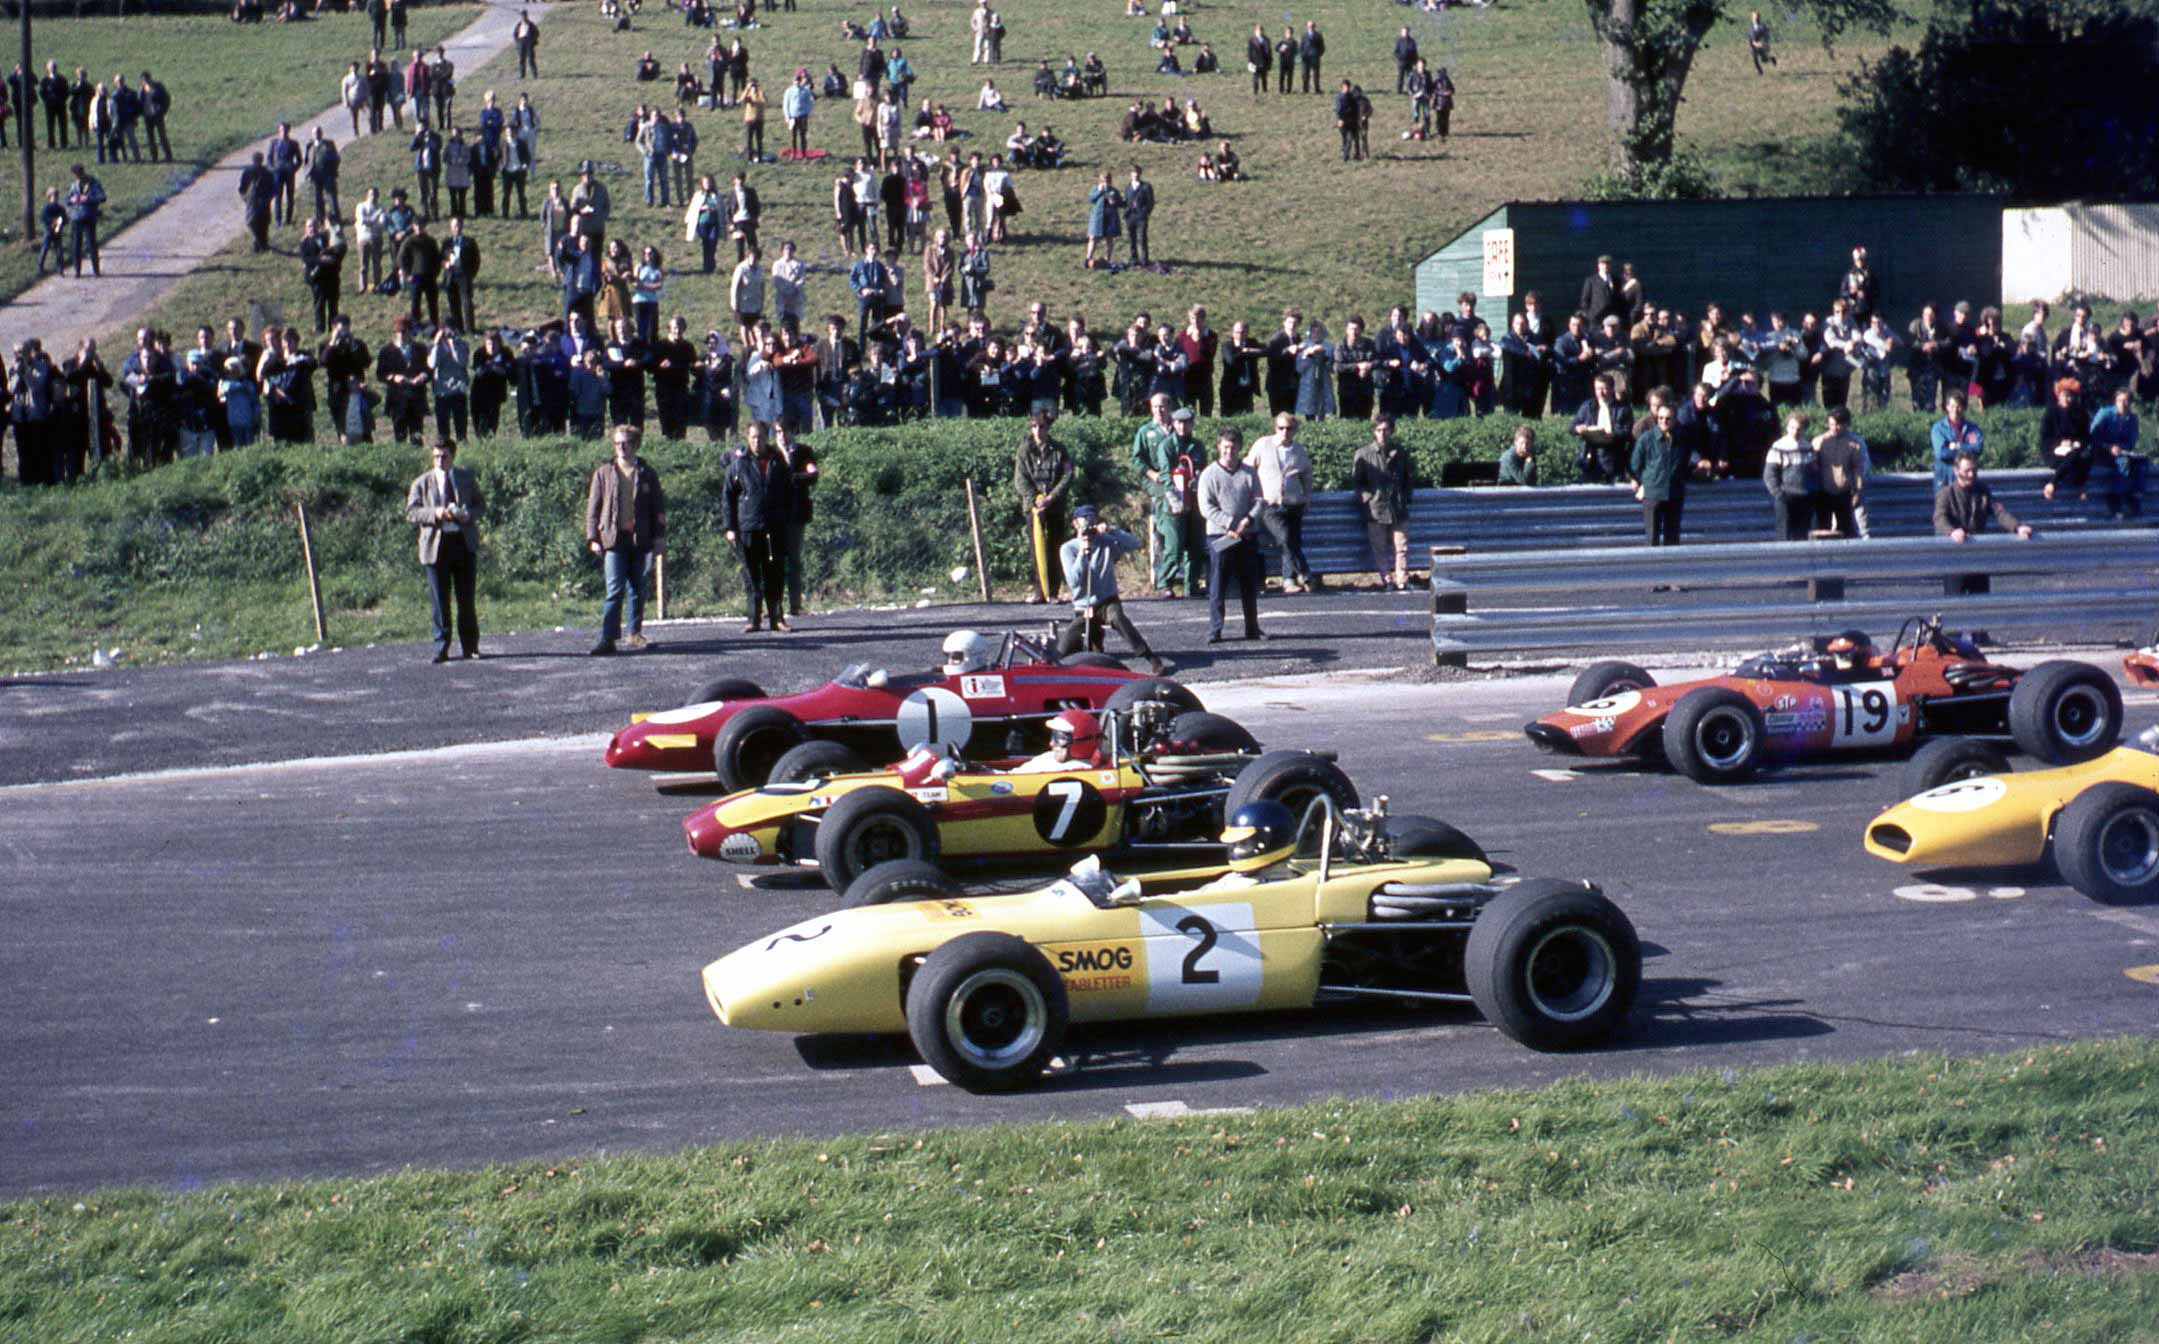 International Formula 3 Race, Caldwell Park 29.09.69